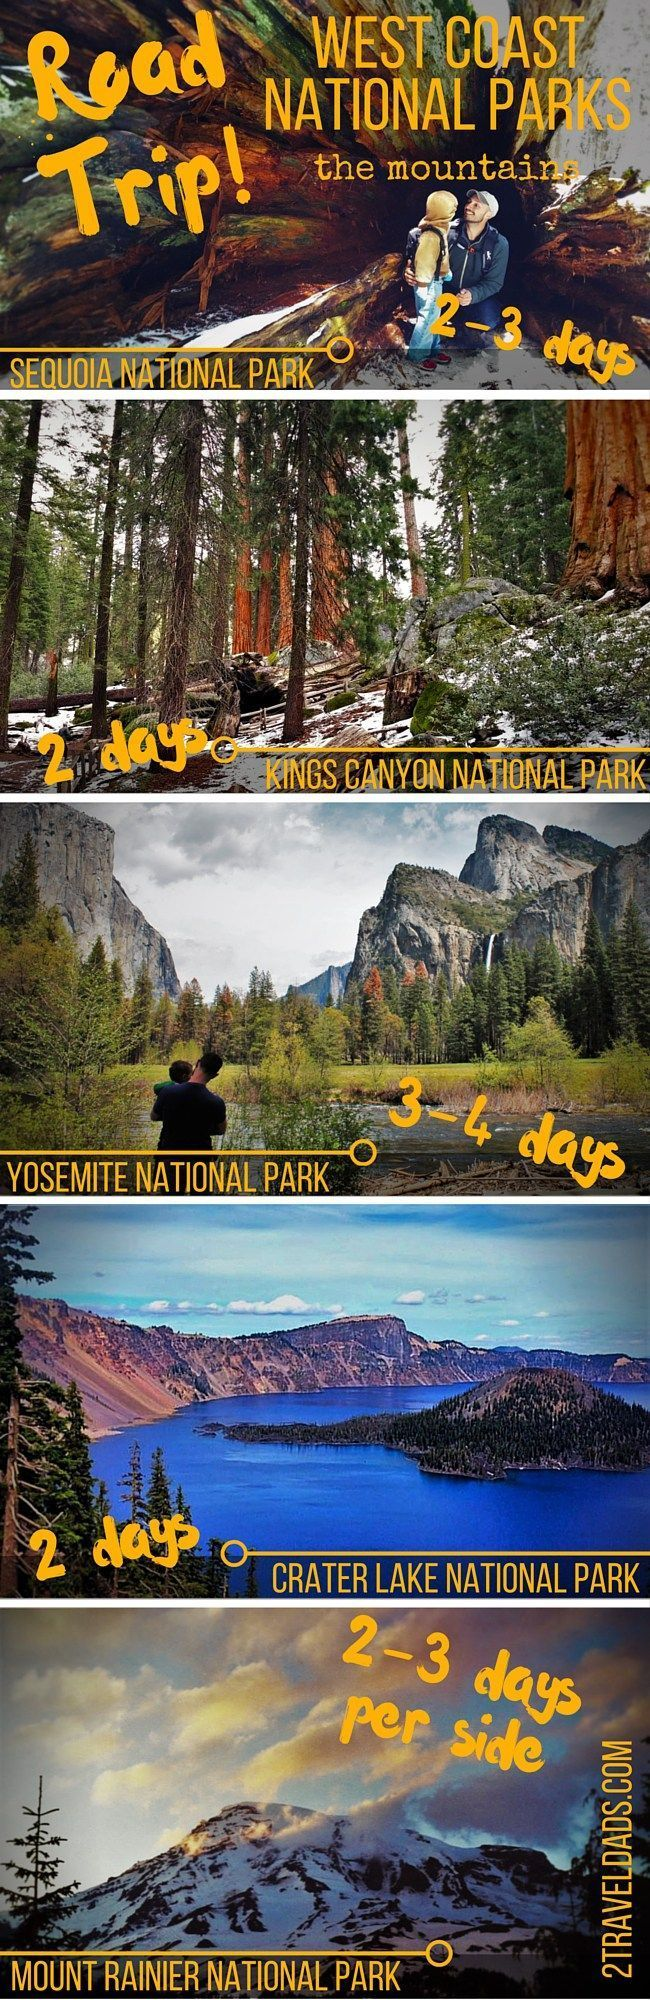 Fall is the perfect time to plan for next summer's vacation! Ideal plan for a West Coast National Park road trip, visiting the various mountain National Parks! 2traveldads.com: